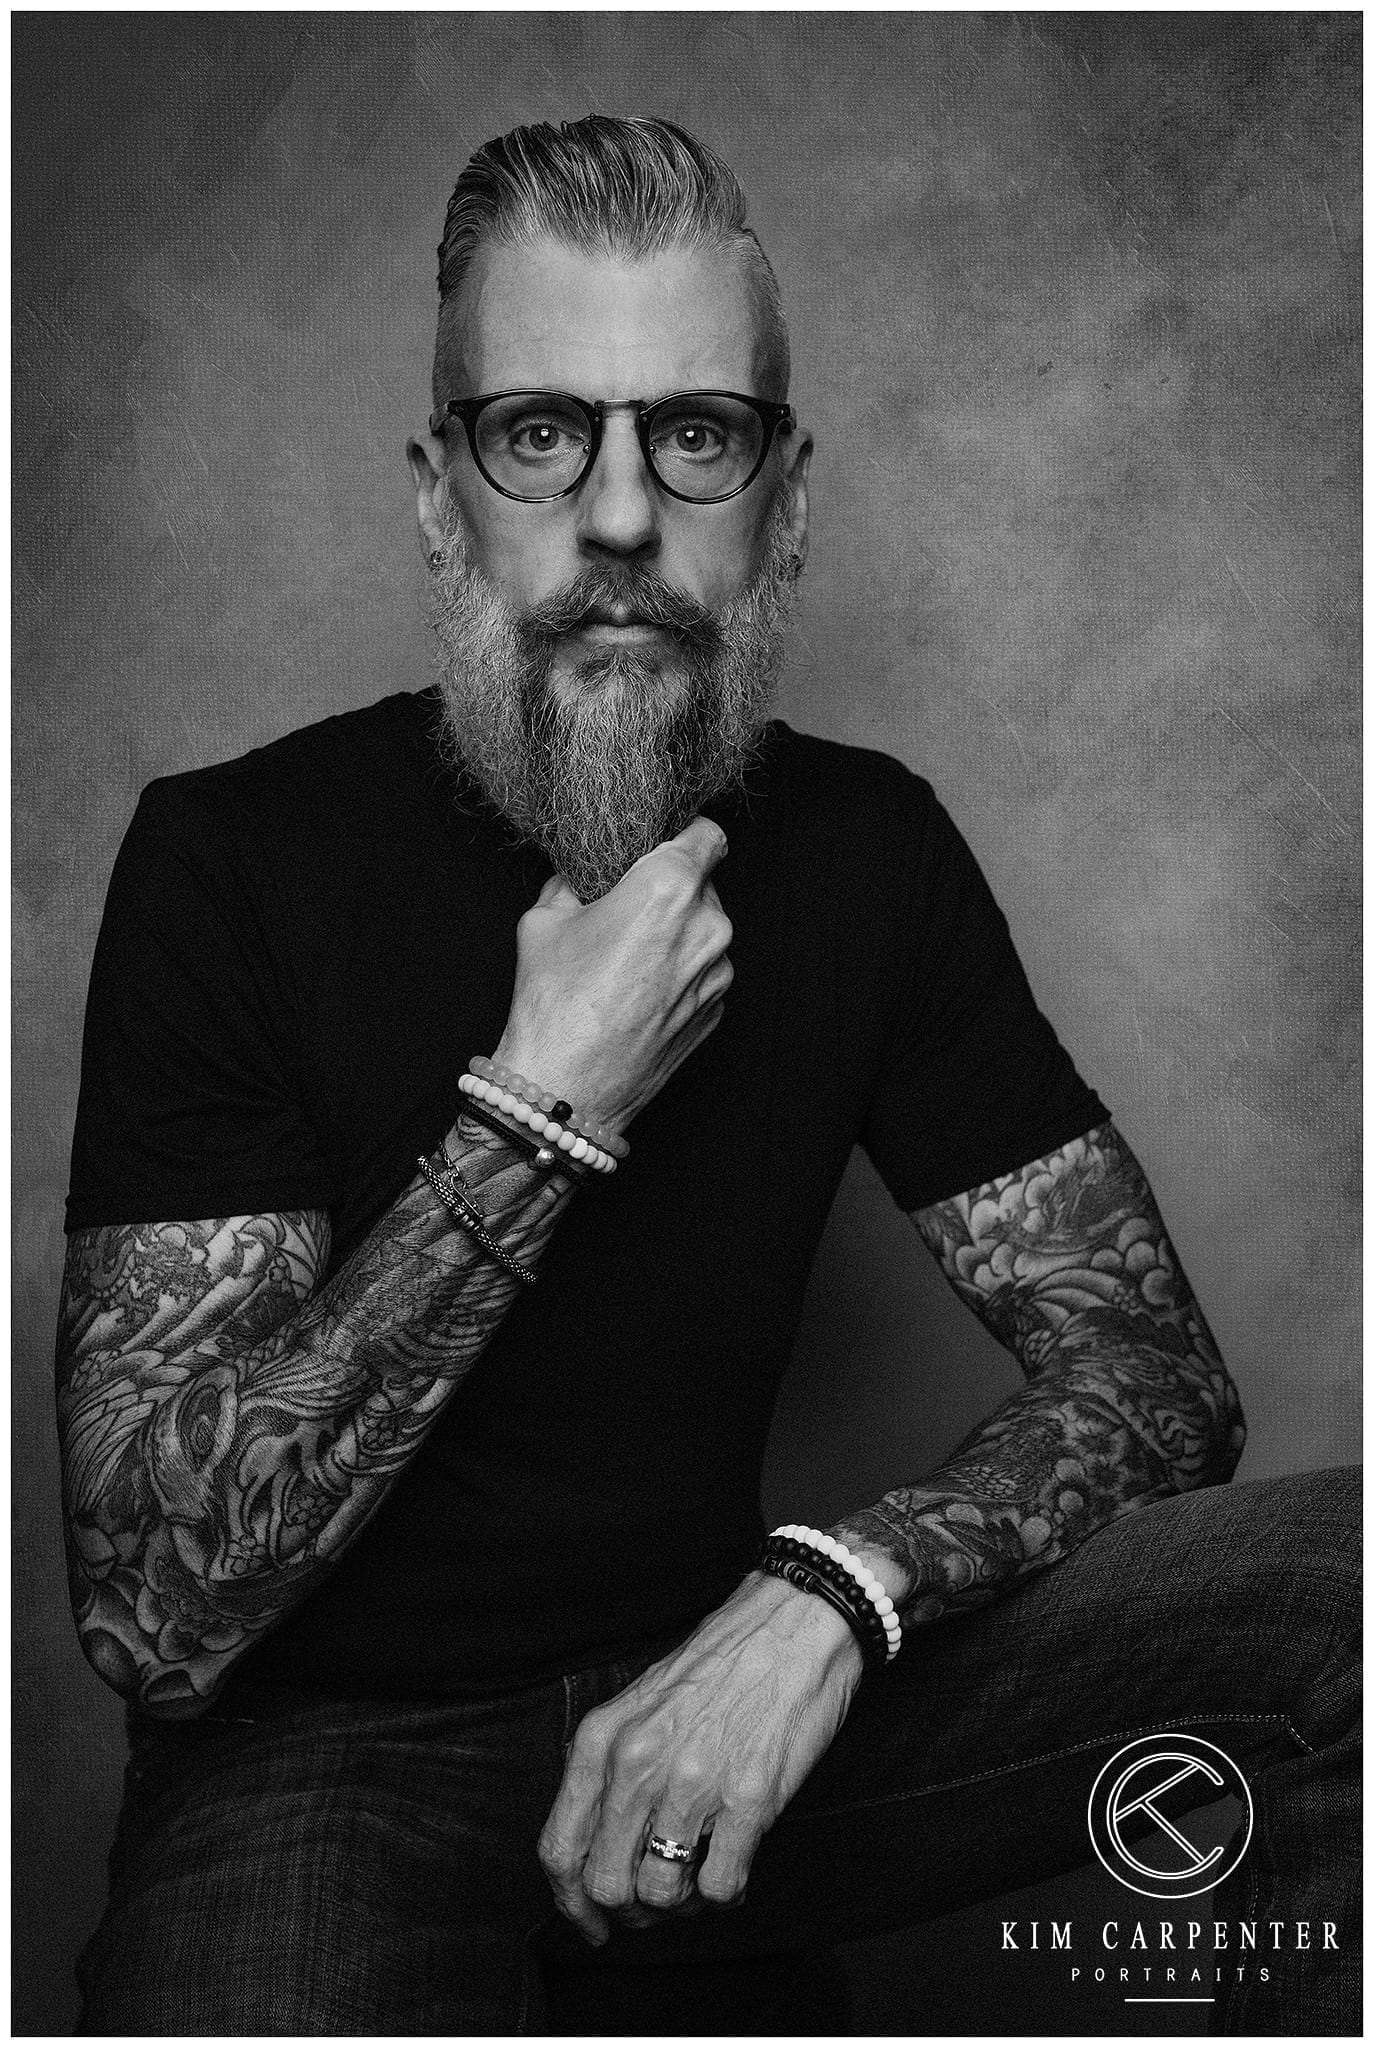 A black and white professional headshot of a local barber.